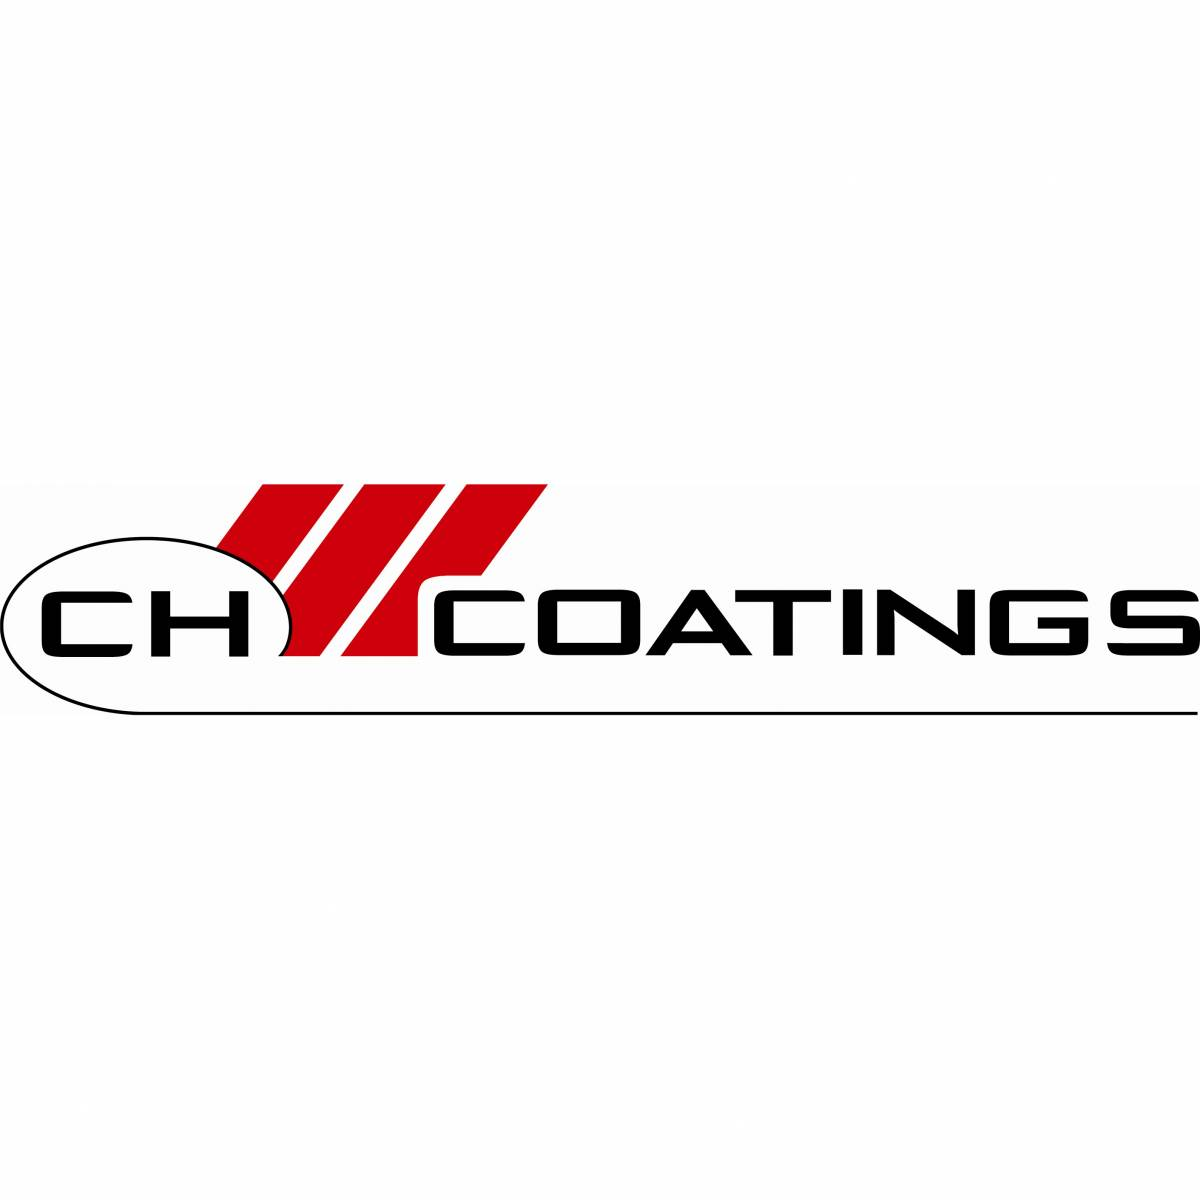 CH Coatings AG in neuem Design